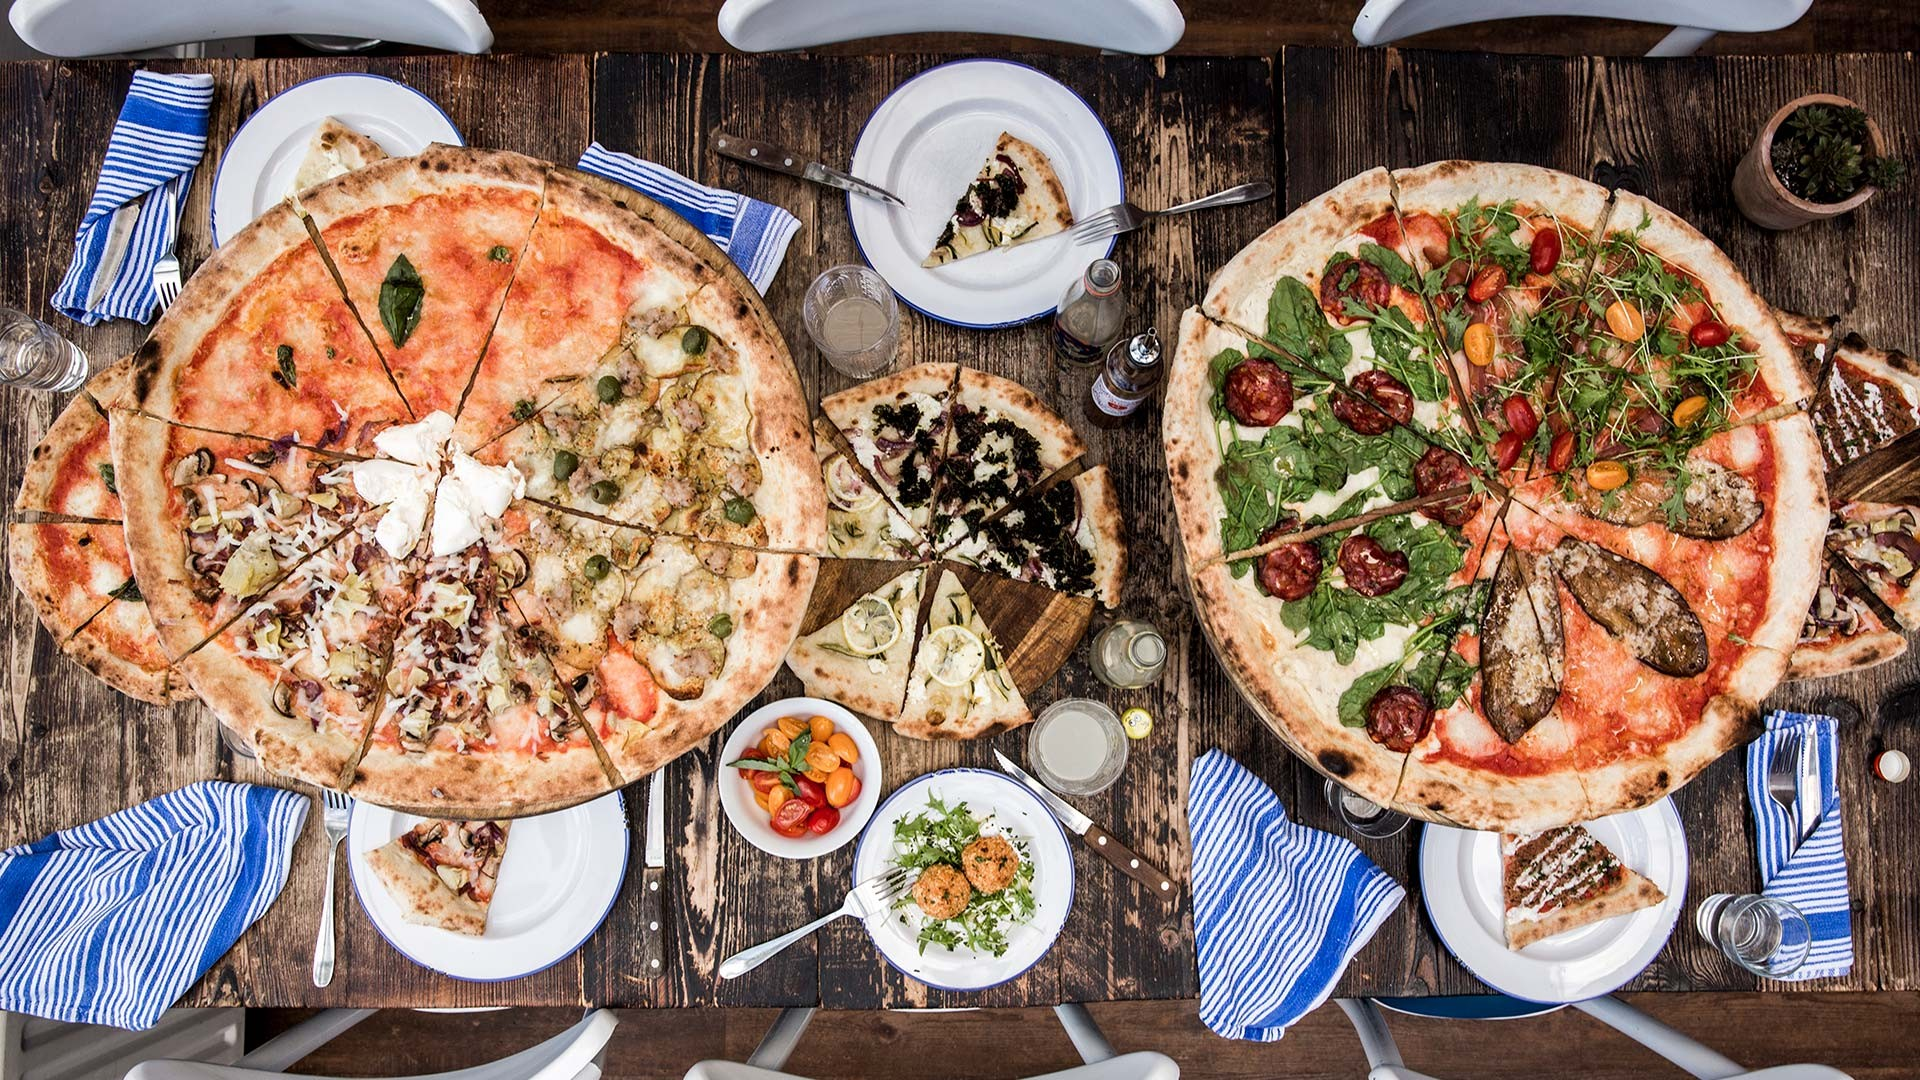 Pizzas and starters from Pi Pizza